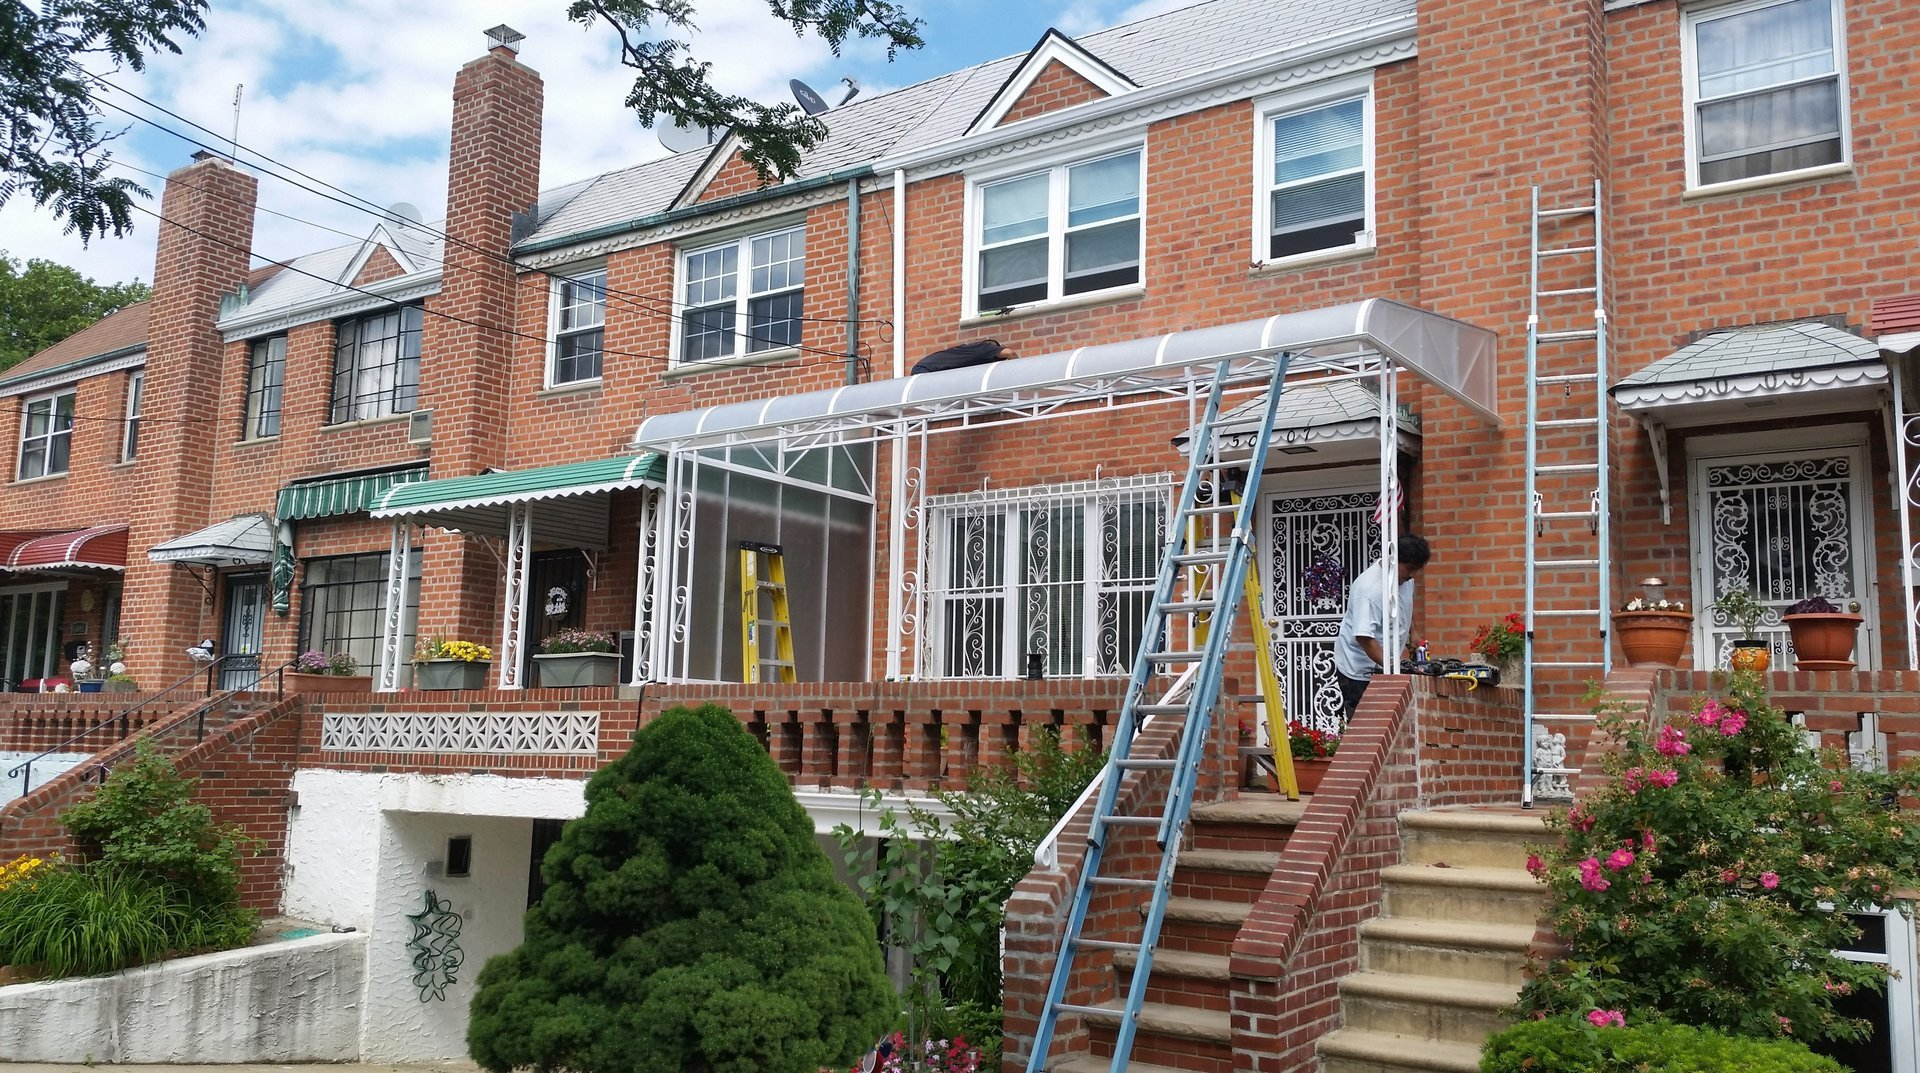 Custom Lexan Fiberglass Awning We Fabricated And Install In New Jersey NYC